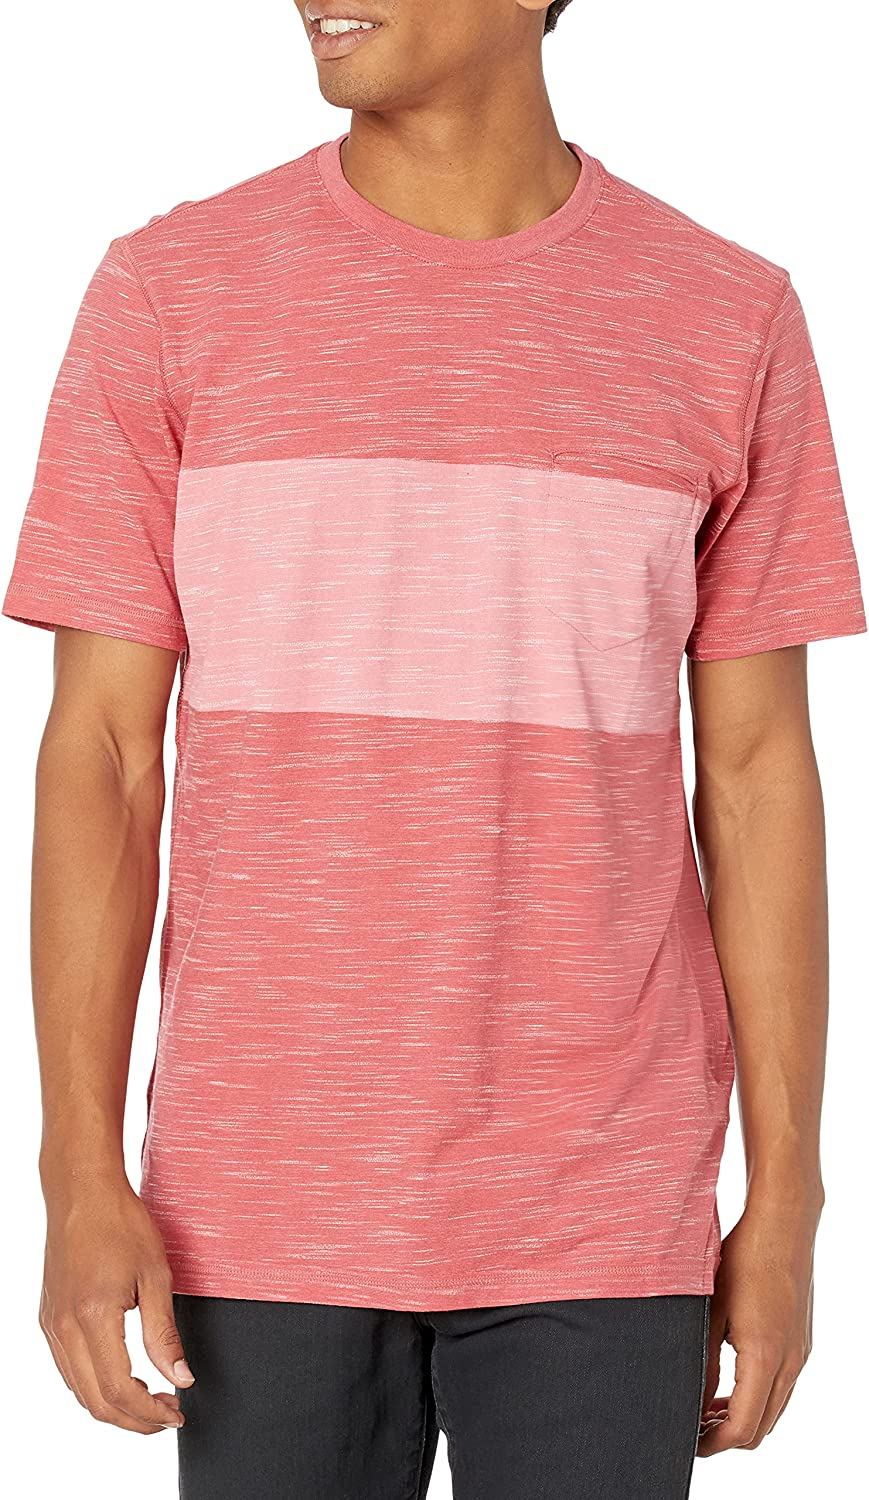 Under Armour Men's t-Shirt Lifestyle Pocket Fort Worth 5 ☆ very popular Mall